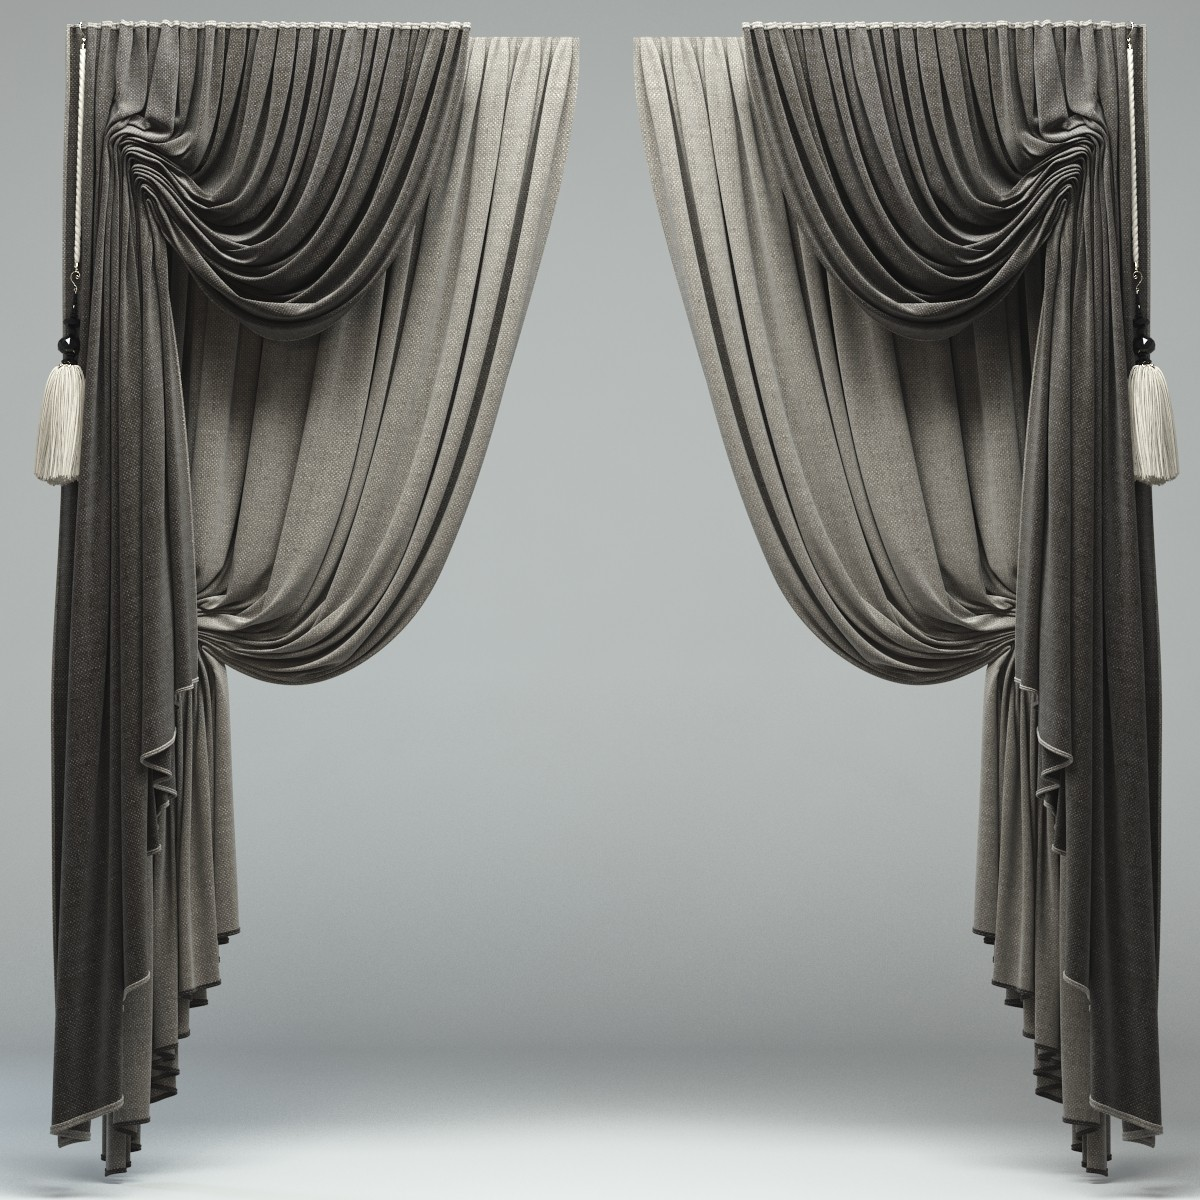 22 Latest curtain designs, patterns, ideas for modern and classic ...